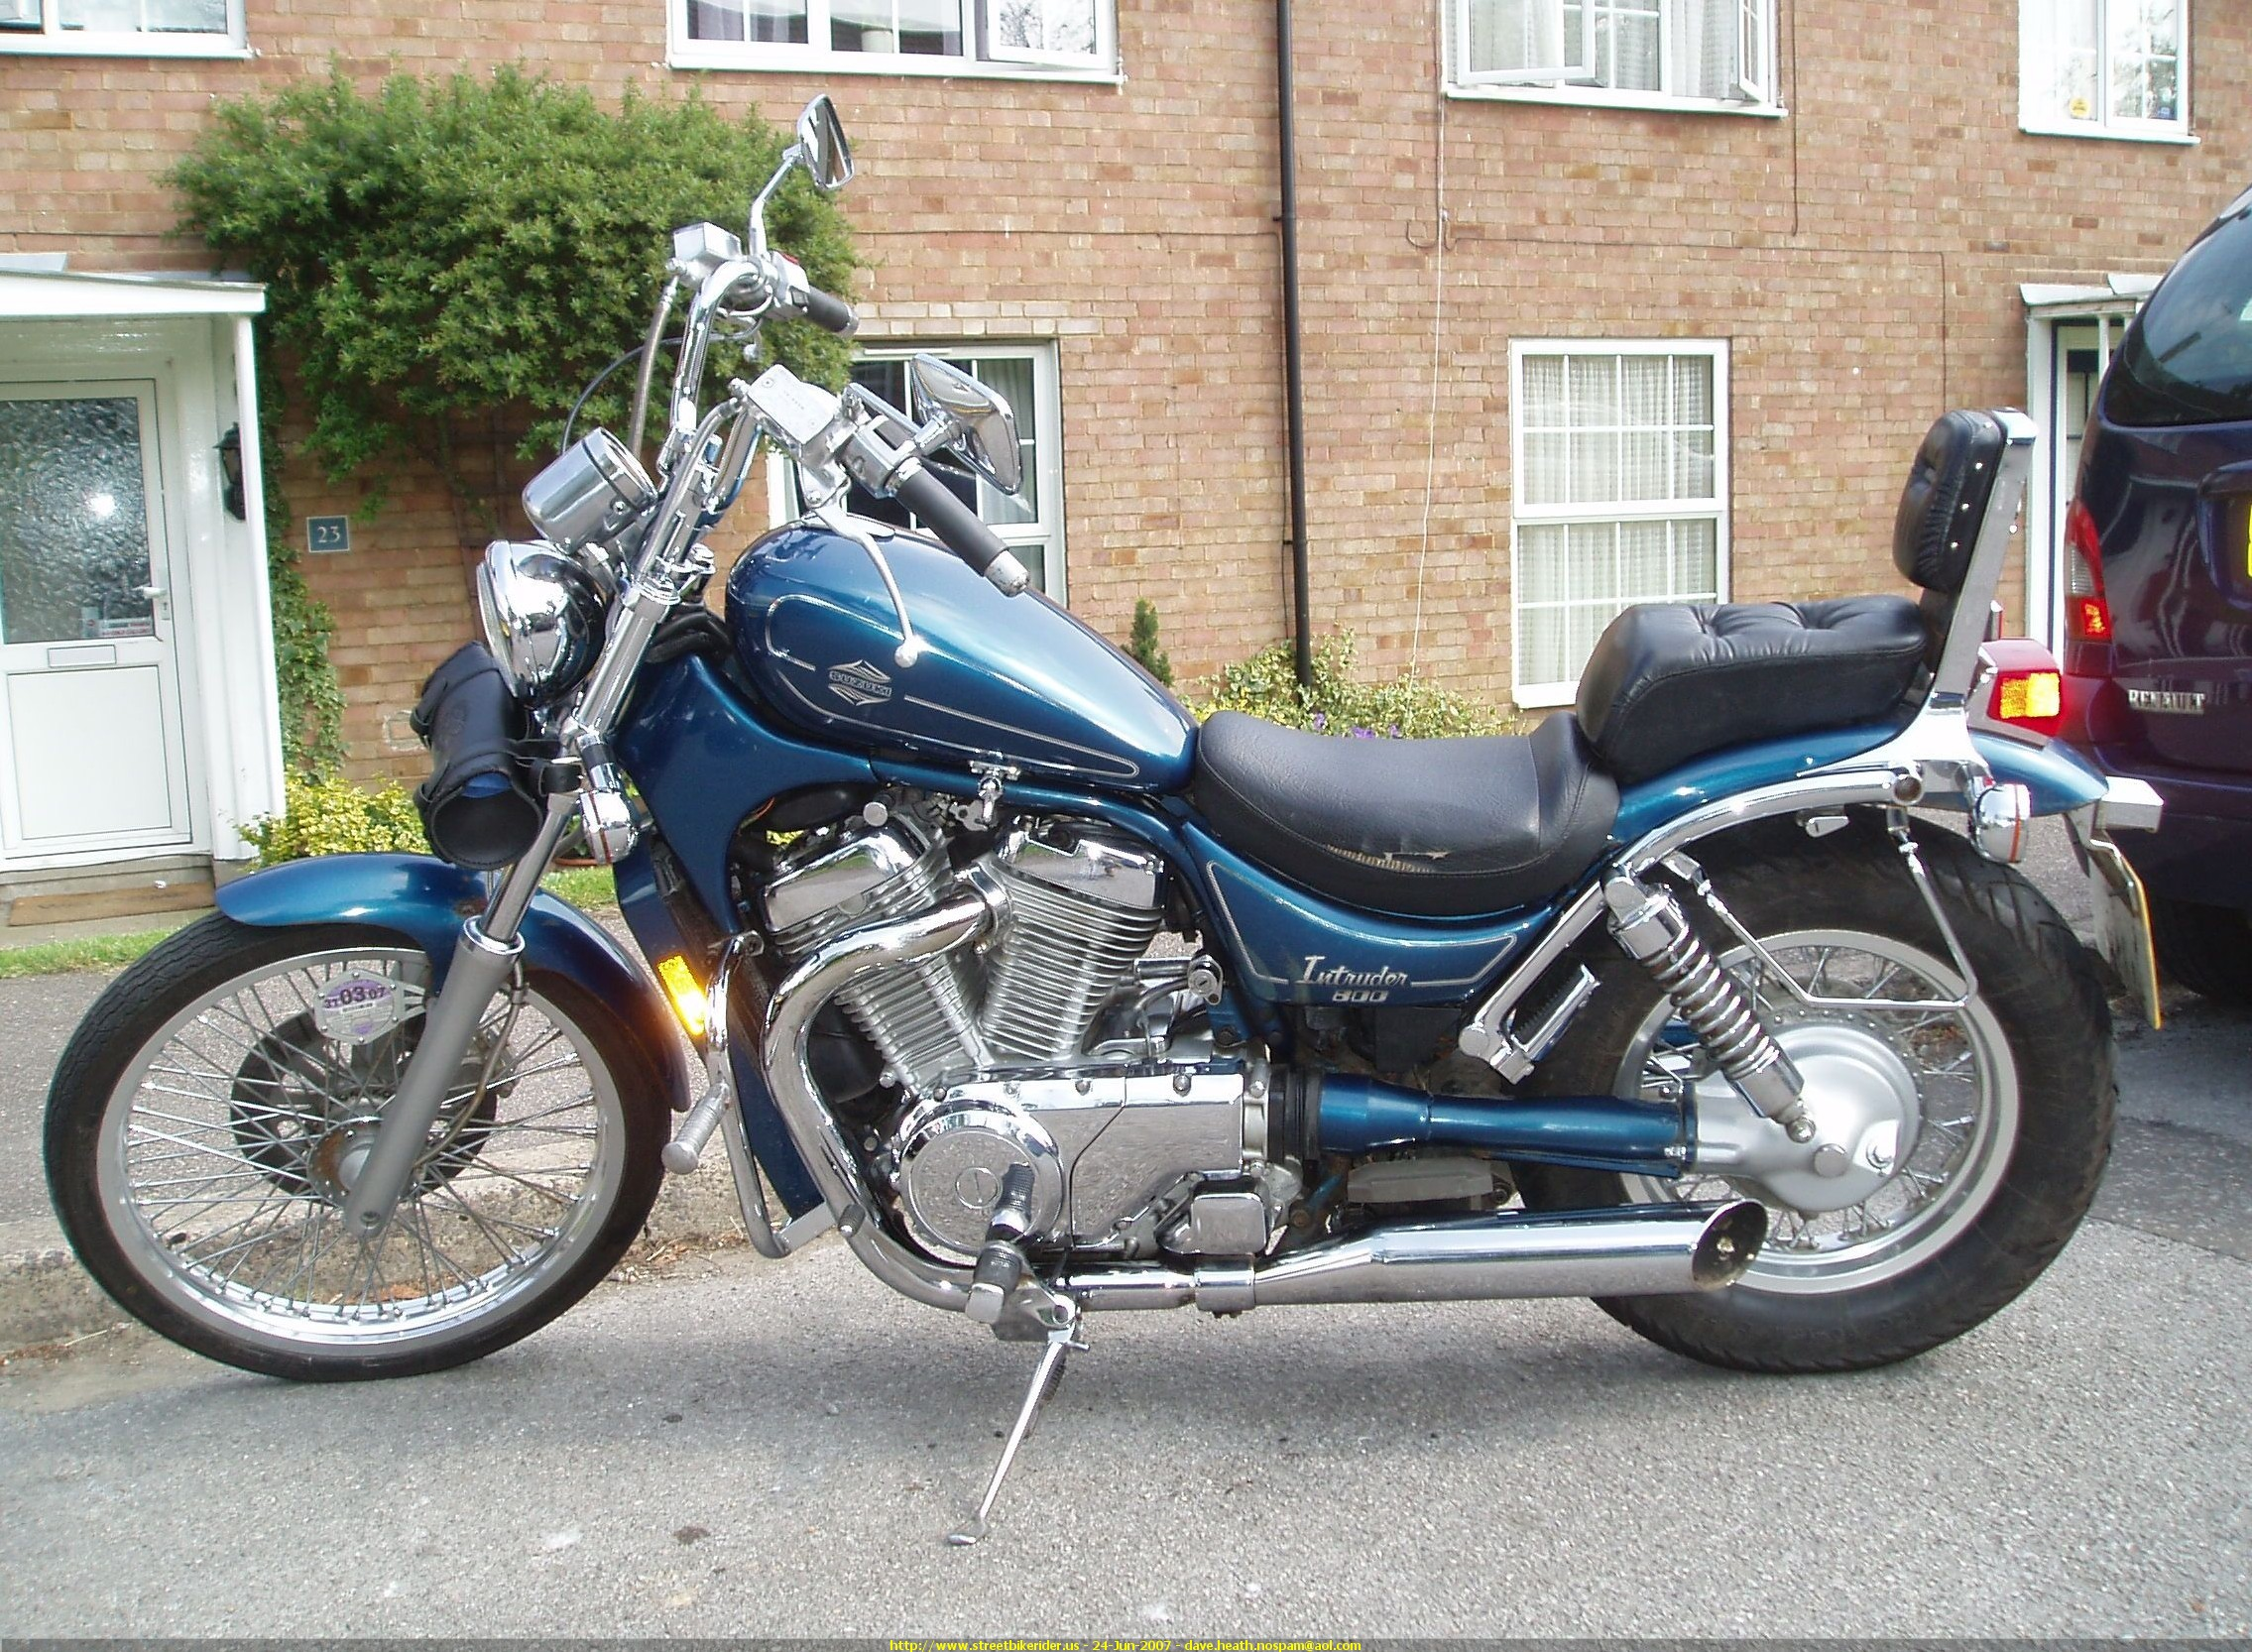 1990 Suzuki VS 750 Intruder: pics, specs and information